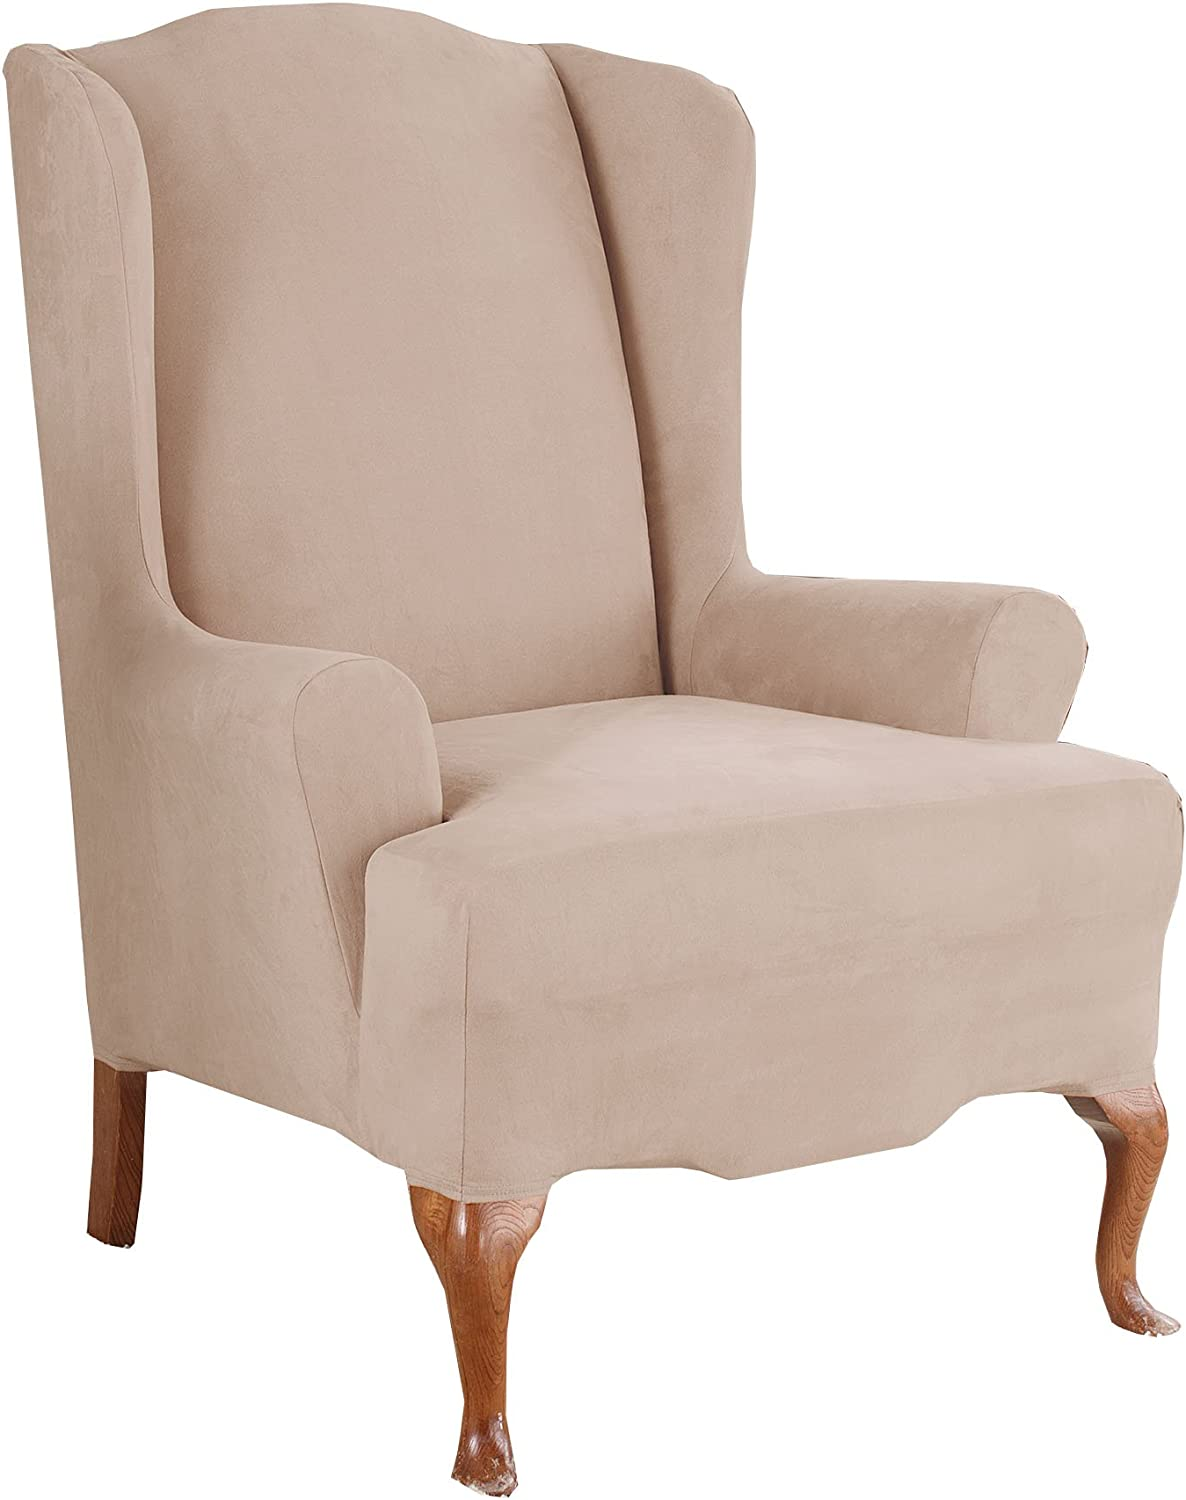 Wing Chair Slipcover Taupe SureFit Stretch Suede